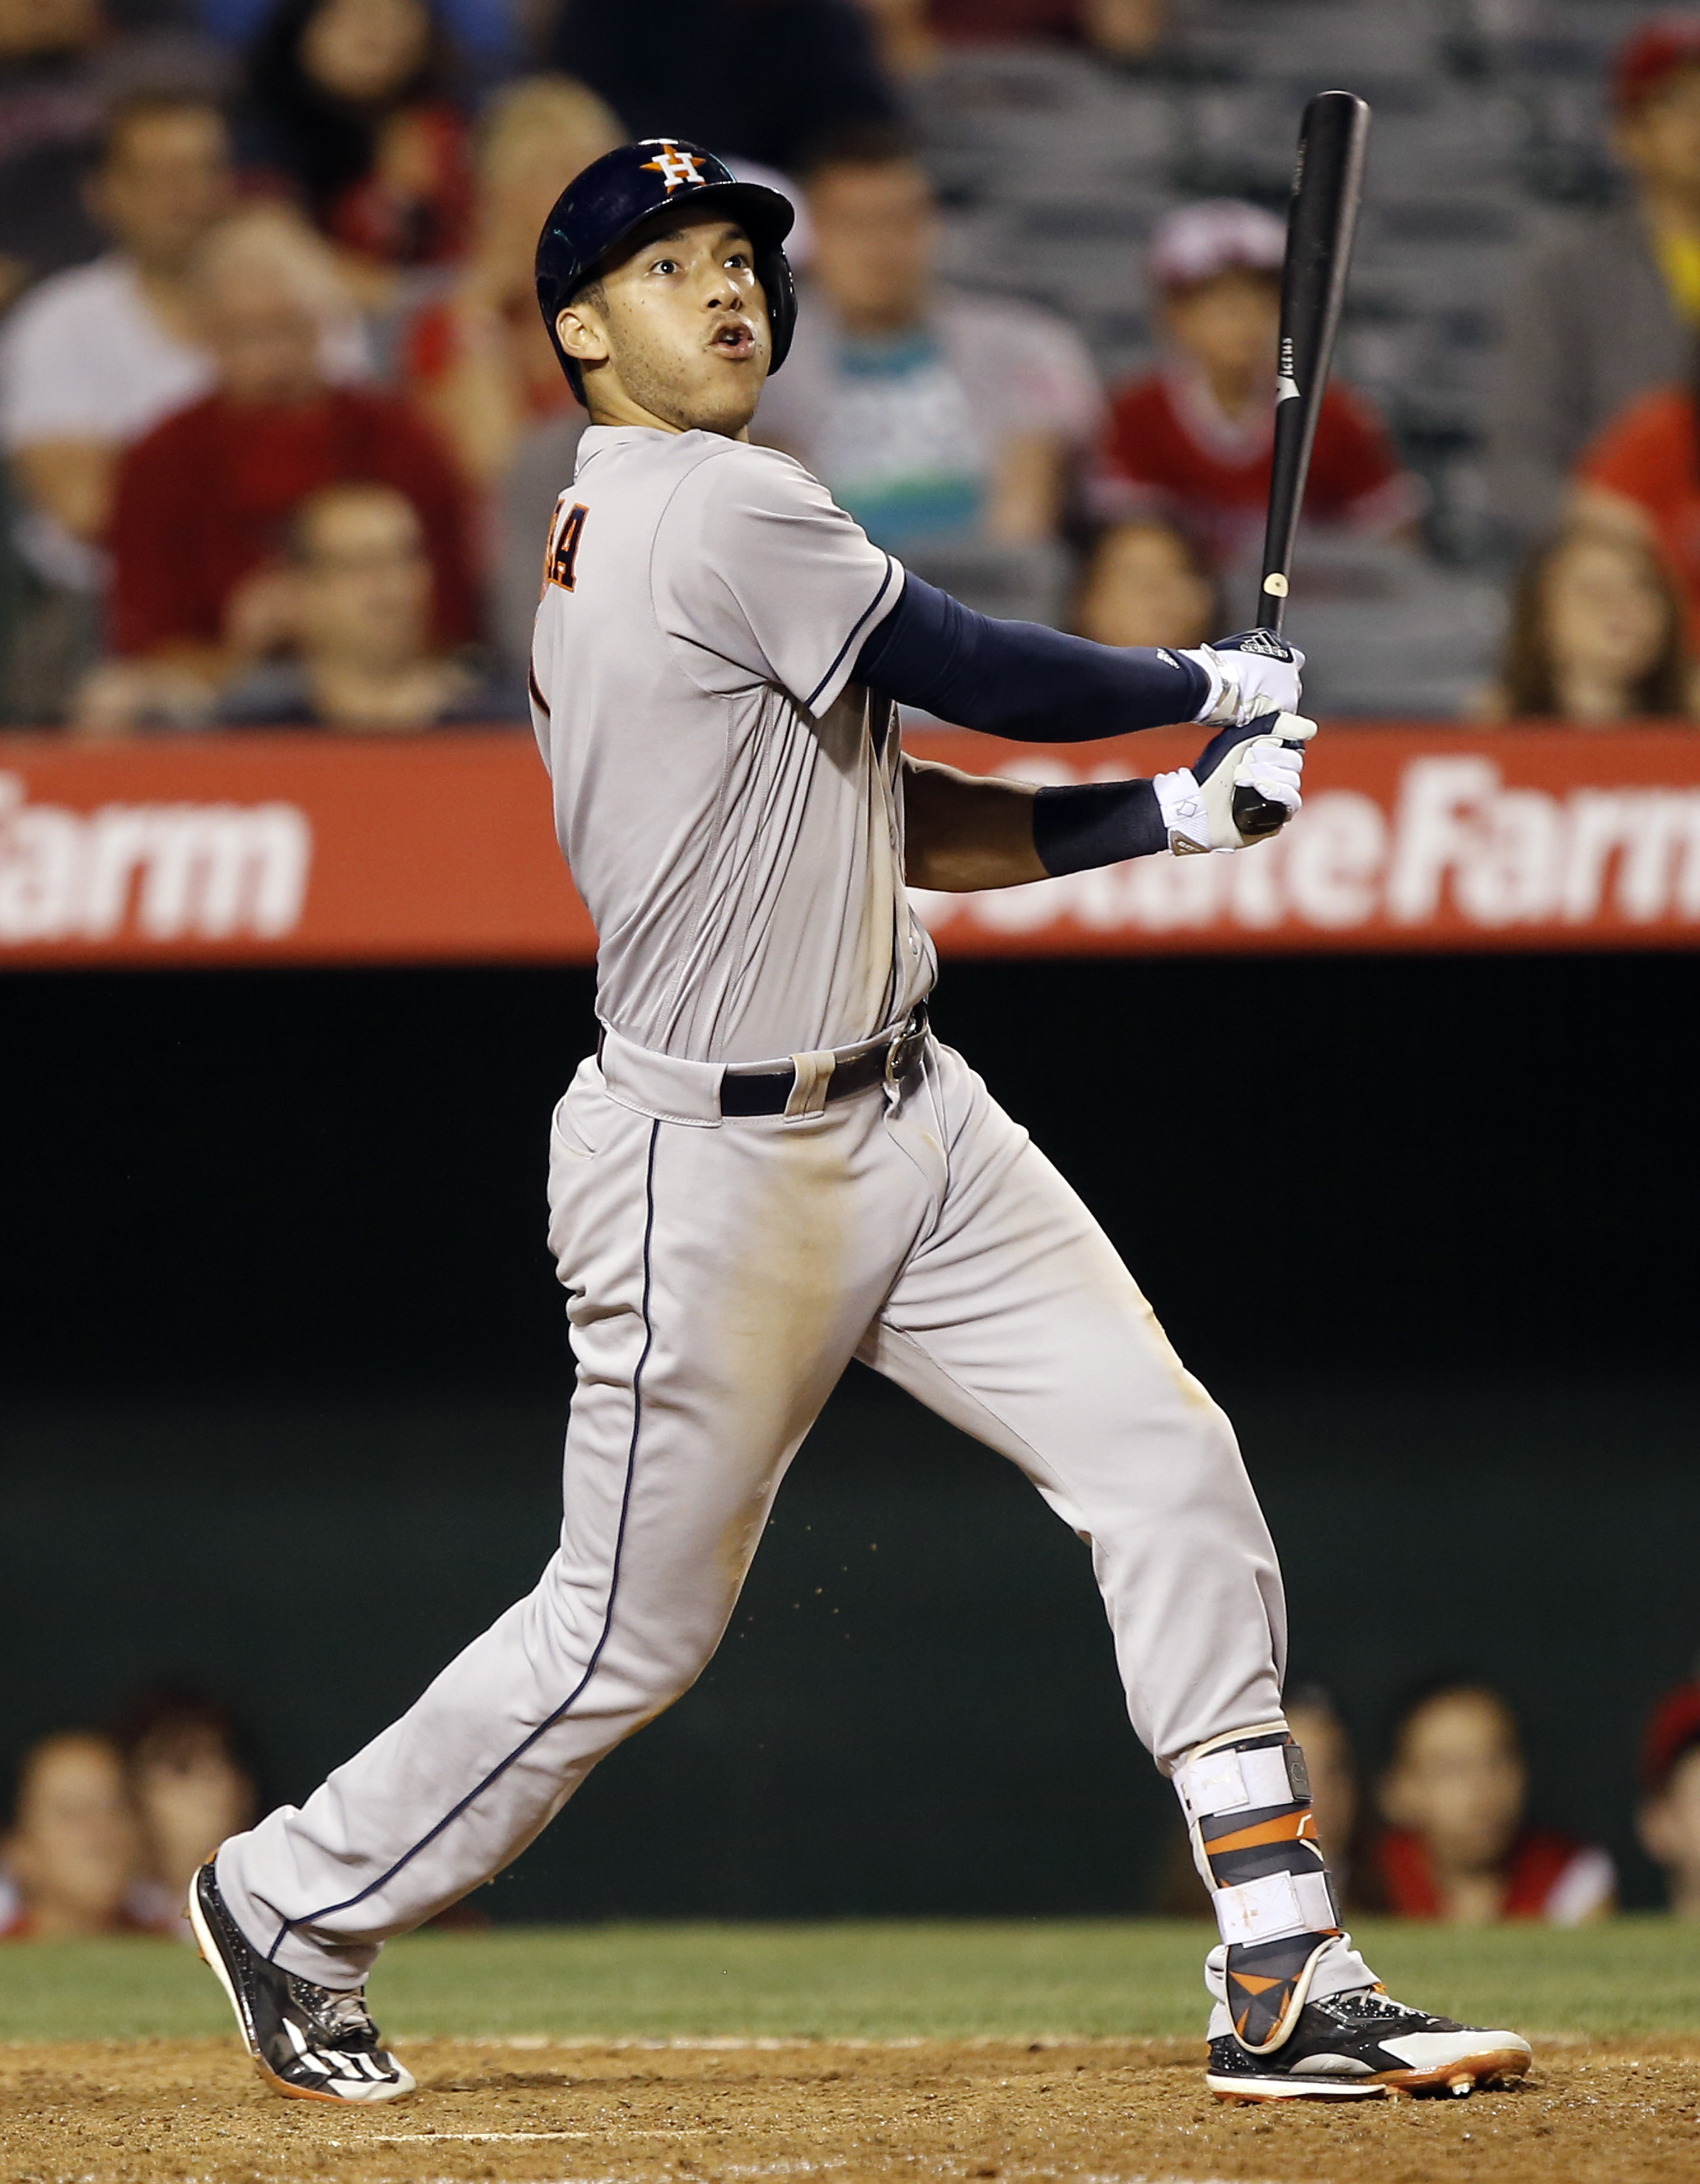 Houston Astros' Carlos Correa hits an RBI sacrifice fly to right field during the ninth inning of a baseball game against the Los Angeles Angels in Anaheim, Calif., Monday, June 27, 2016. (AP Photo/Alex Gallardo)